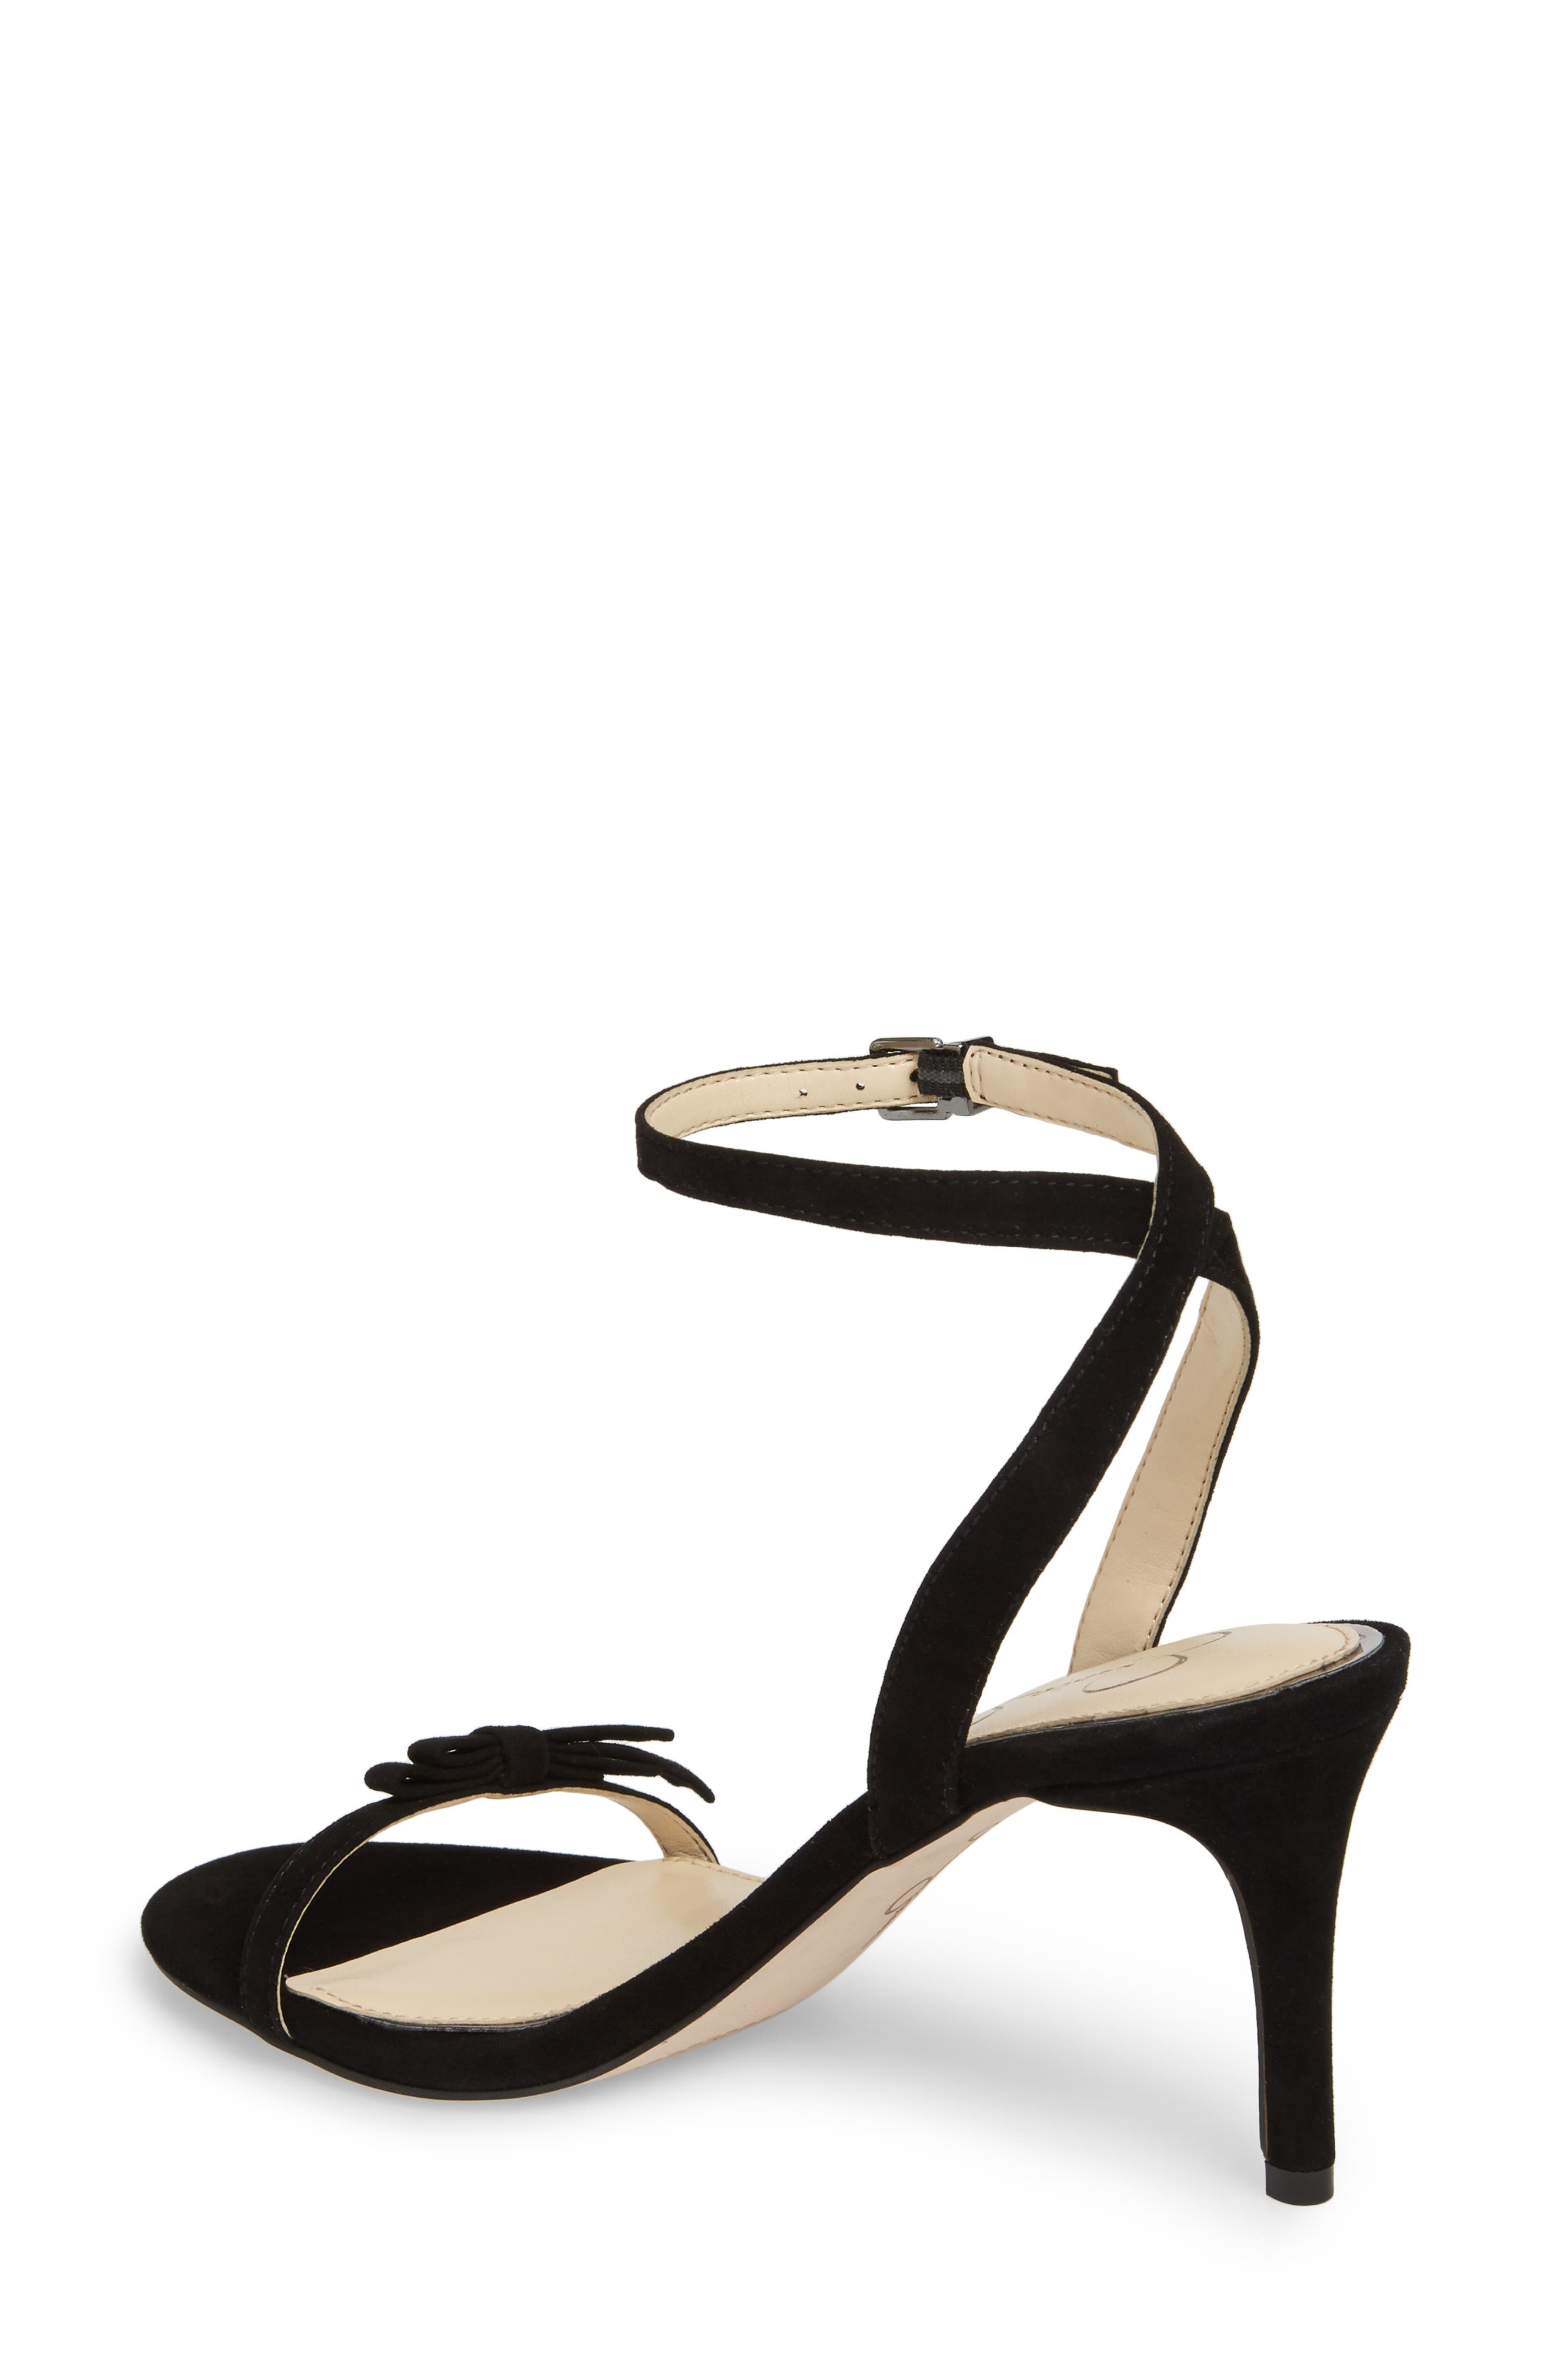 Purella Sandal,                             Alternate thumbnail 2, color,                             BLACK